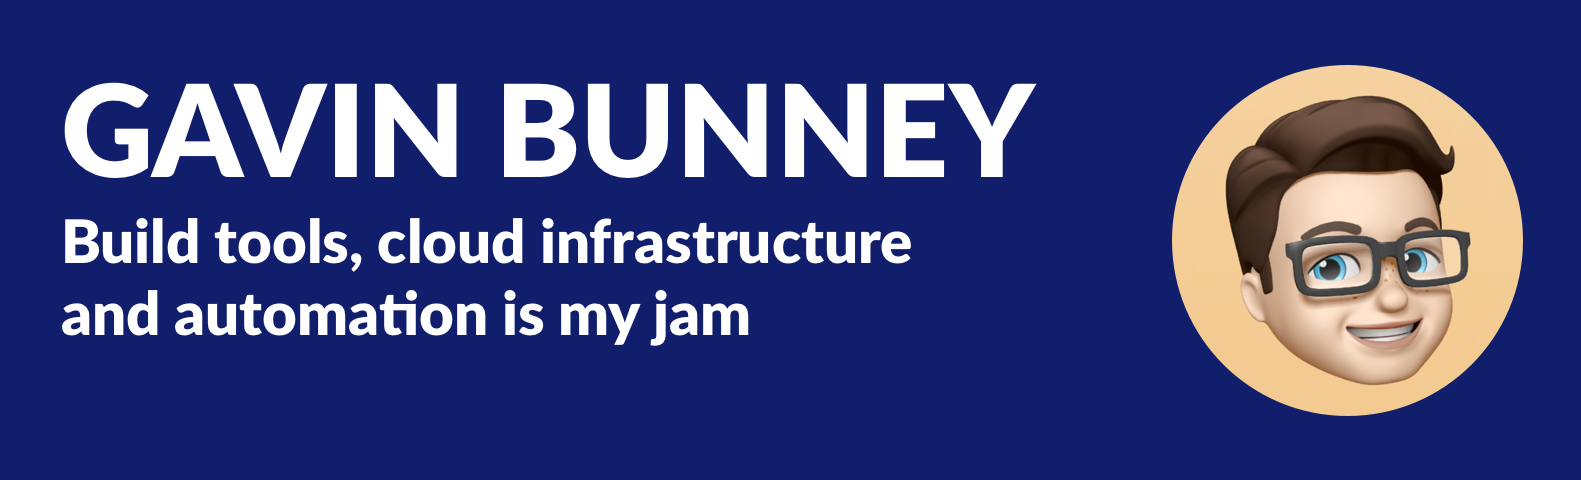 banner that says Gavin Bunney - Build tools, cloud infrastructure and automation is my jam